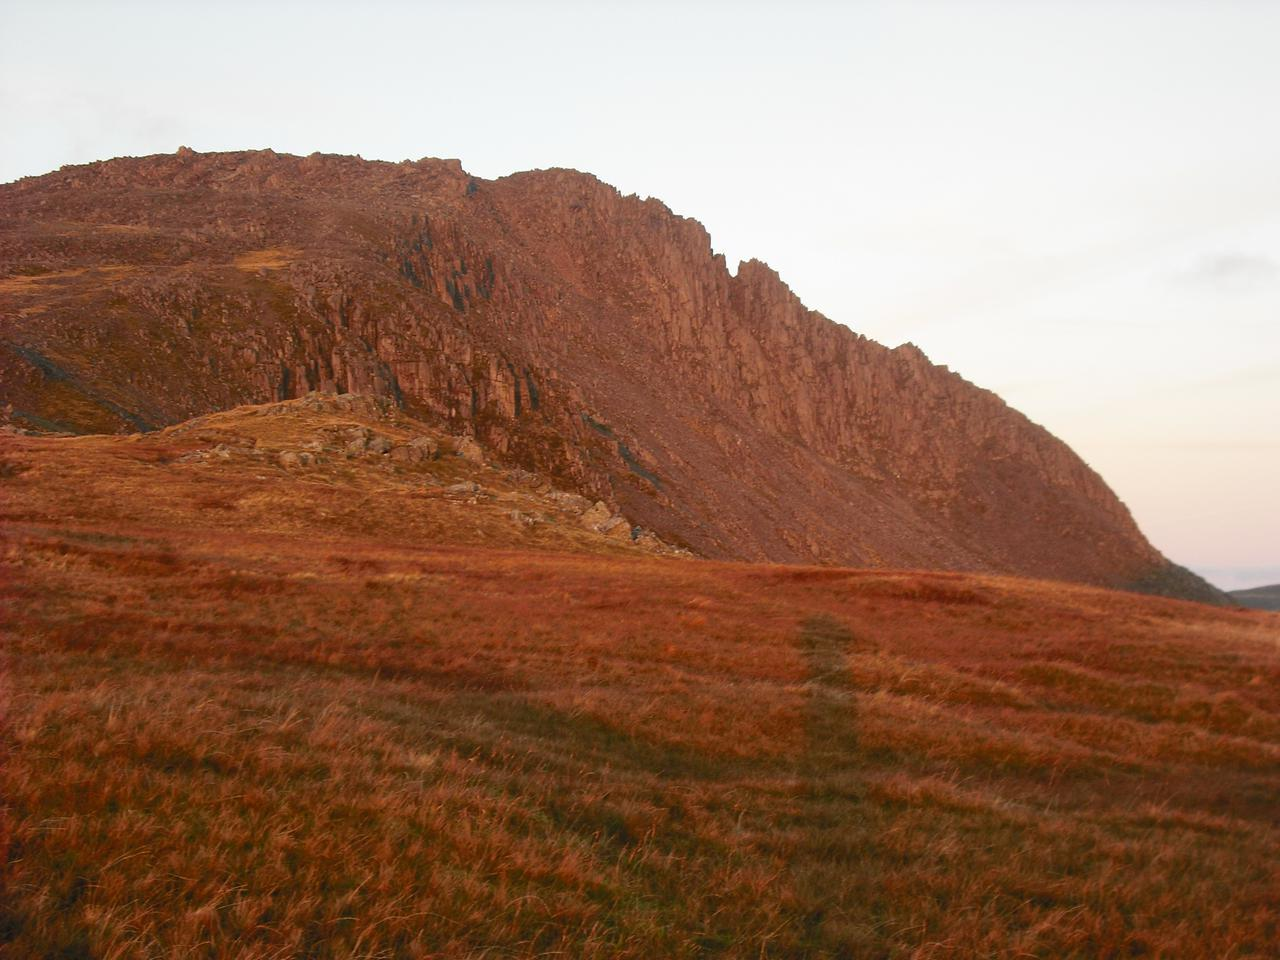 Glyder fach and Bristly Ridge